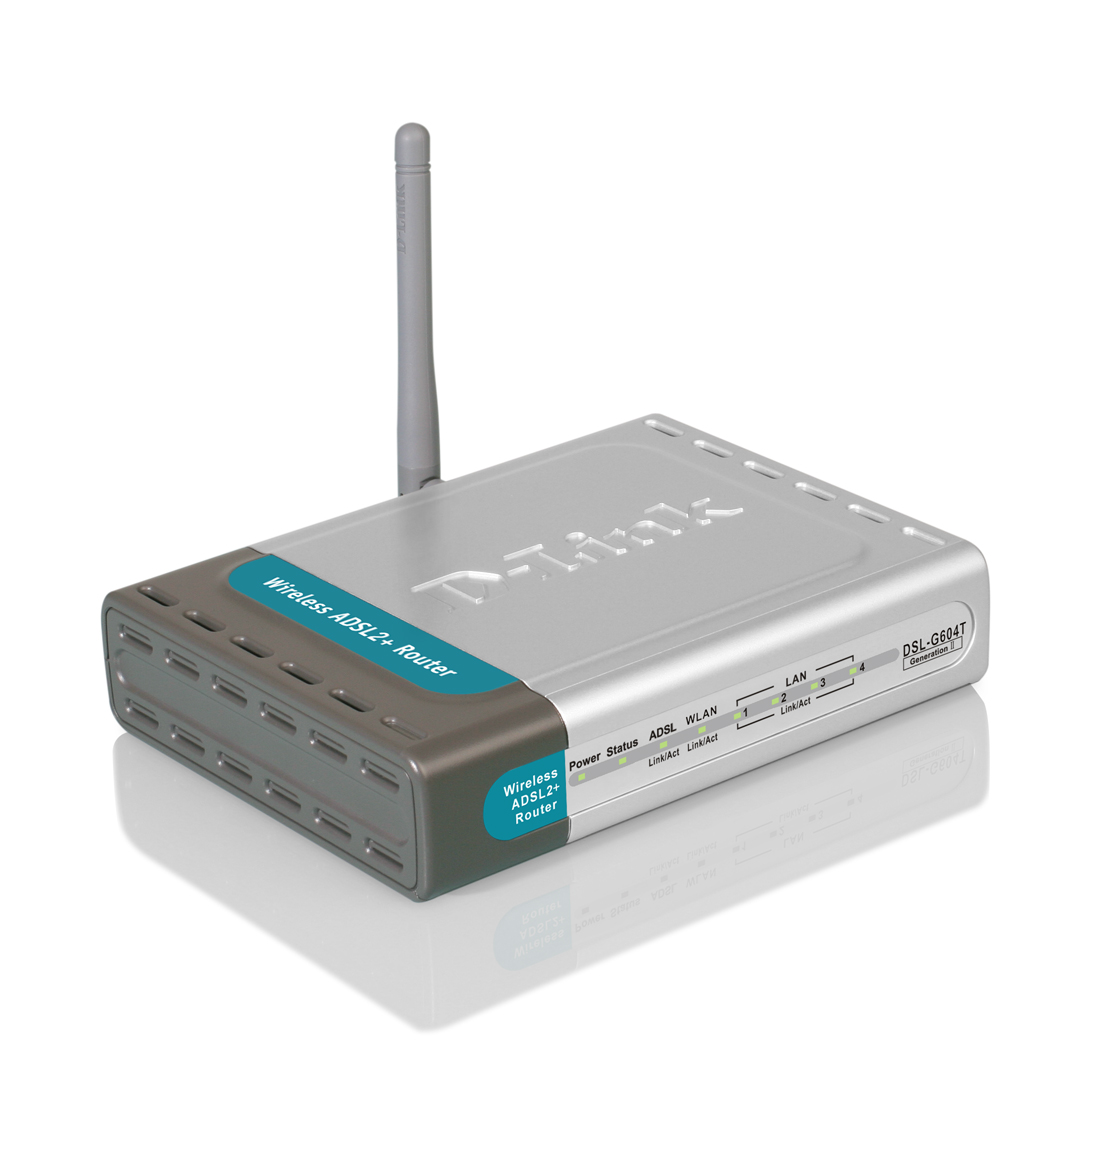 D-LINK DSL-G604T DRIVERS FOR MAC DOWNLOAD